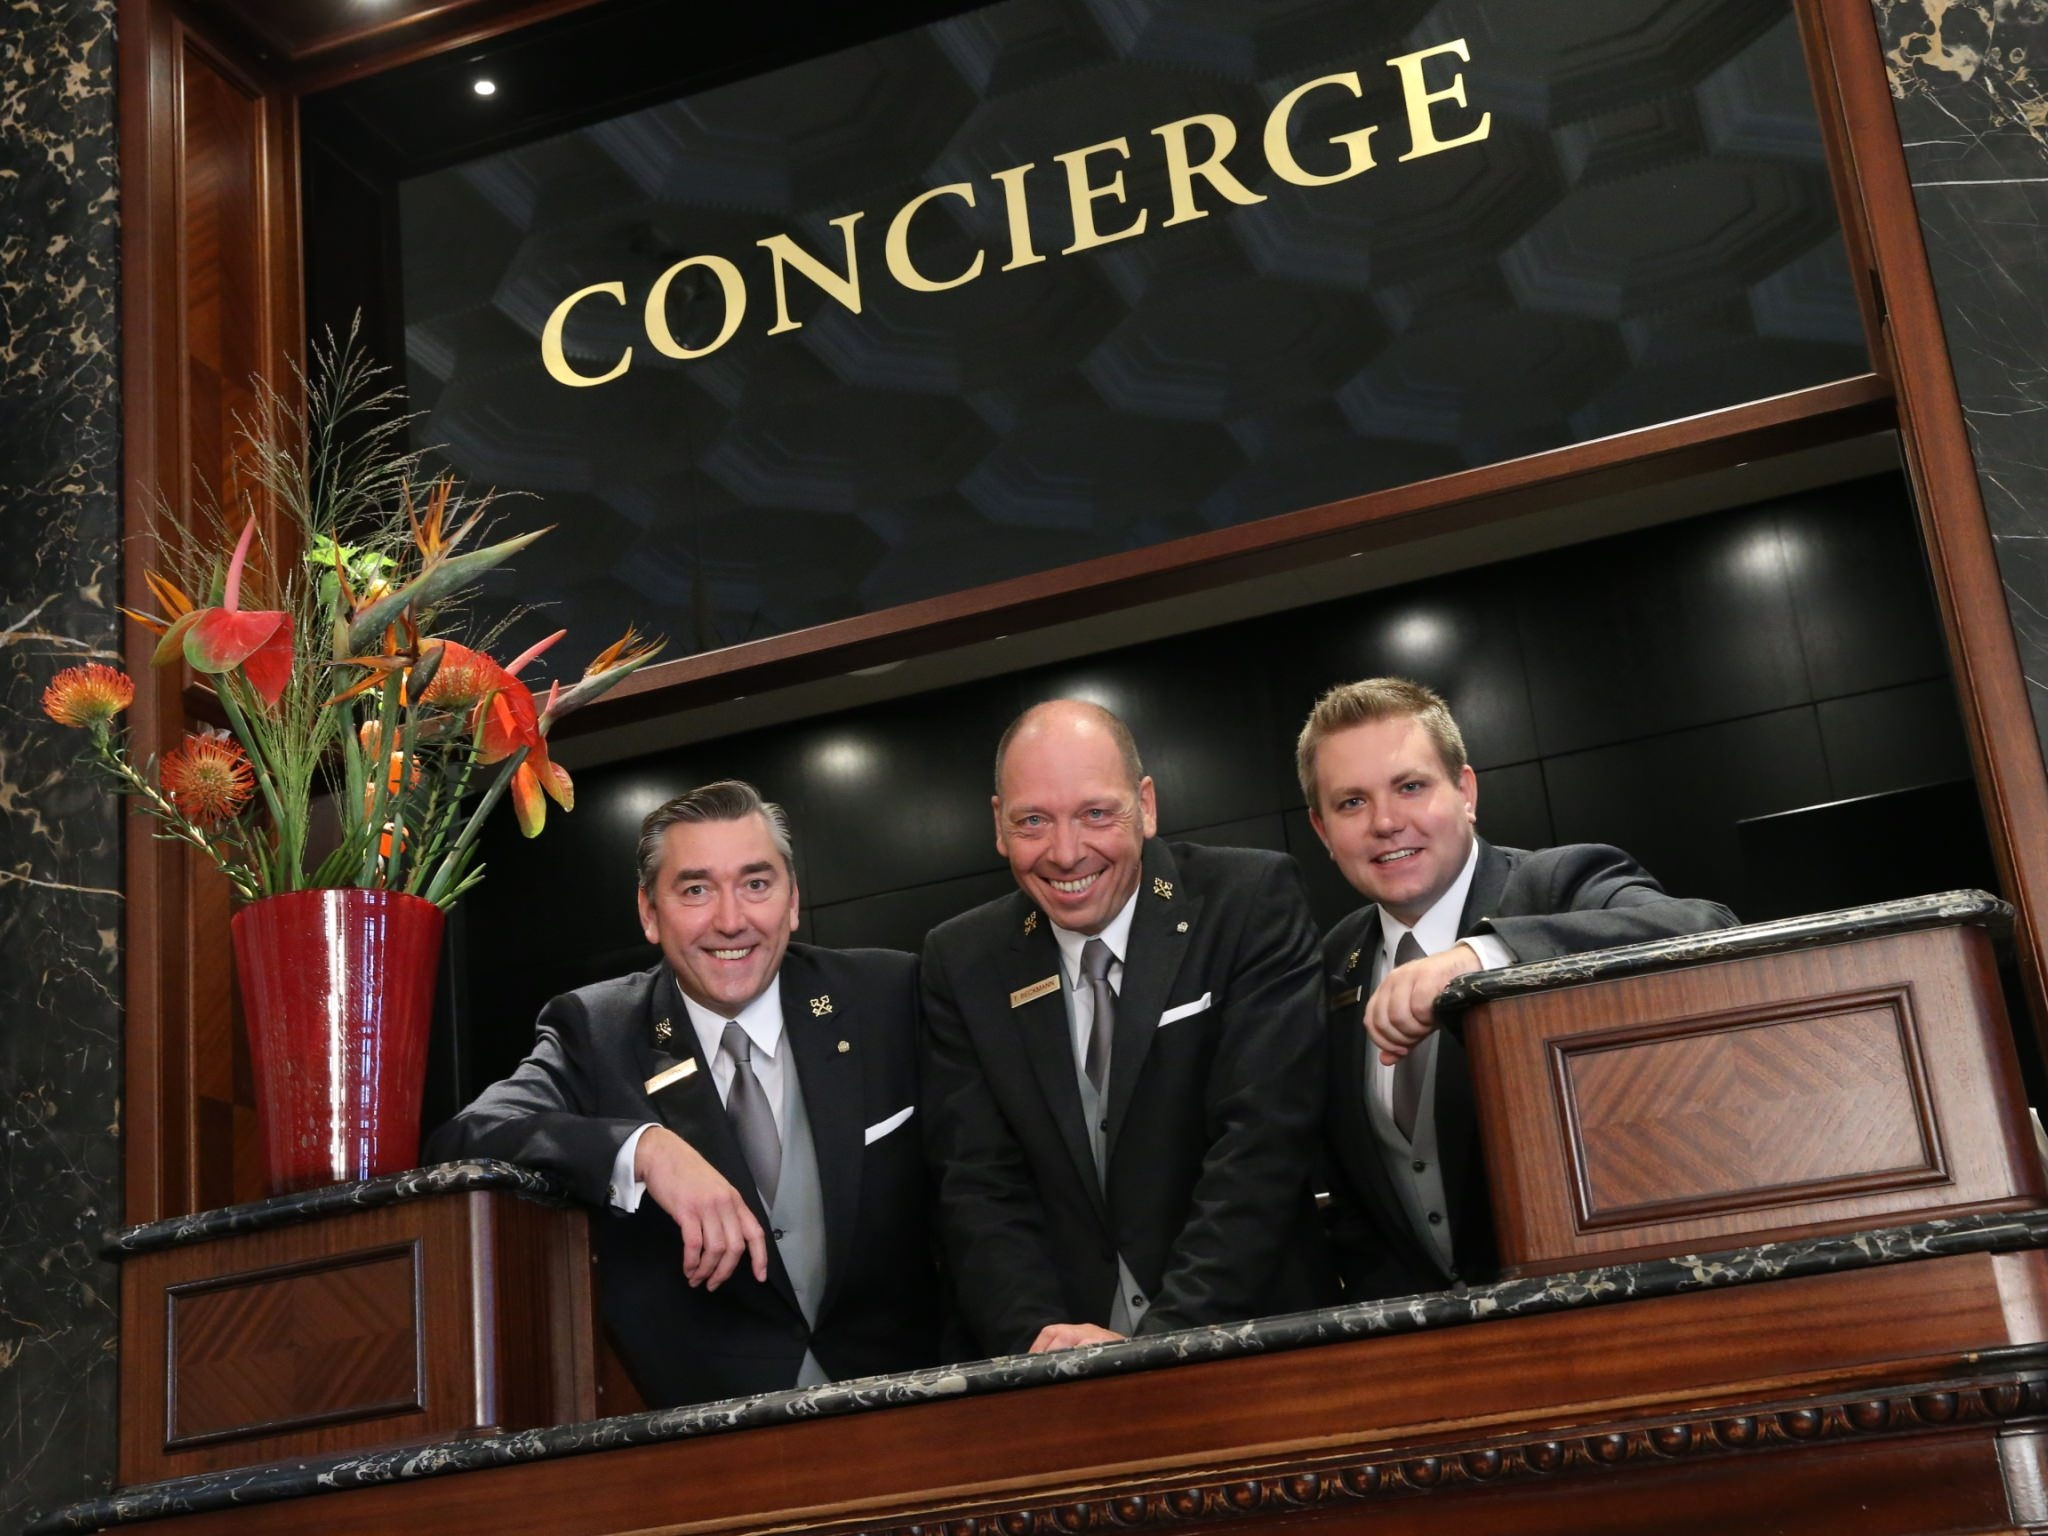 The Concierge Service